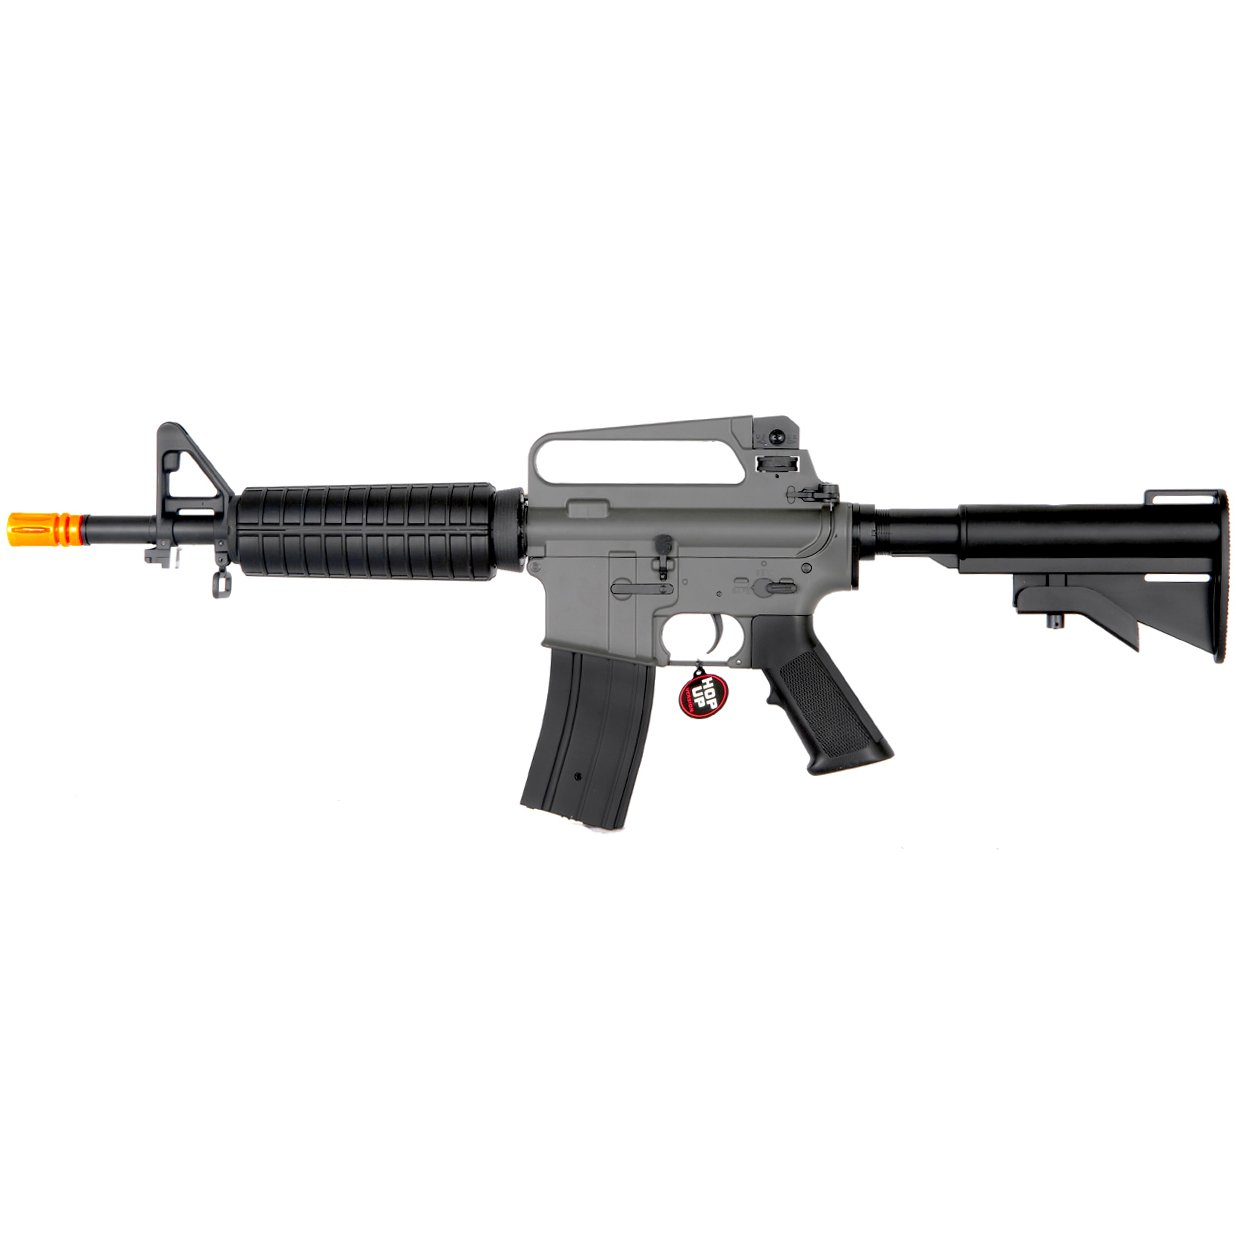 MetalTac JG FB-6601 Electric Airsoft Gun CQB Commando, Full Metal Body, Metal Gearbox Version 2, Auto AEG, Upgraded Powerful Spring 410 Fps with .20g BBs